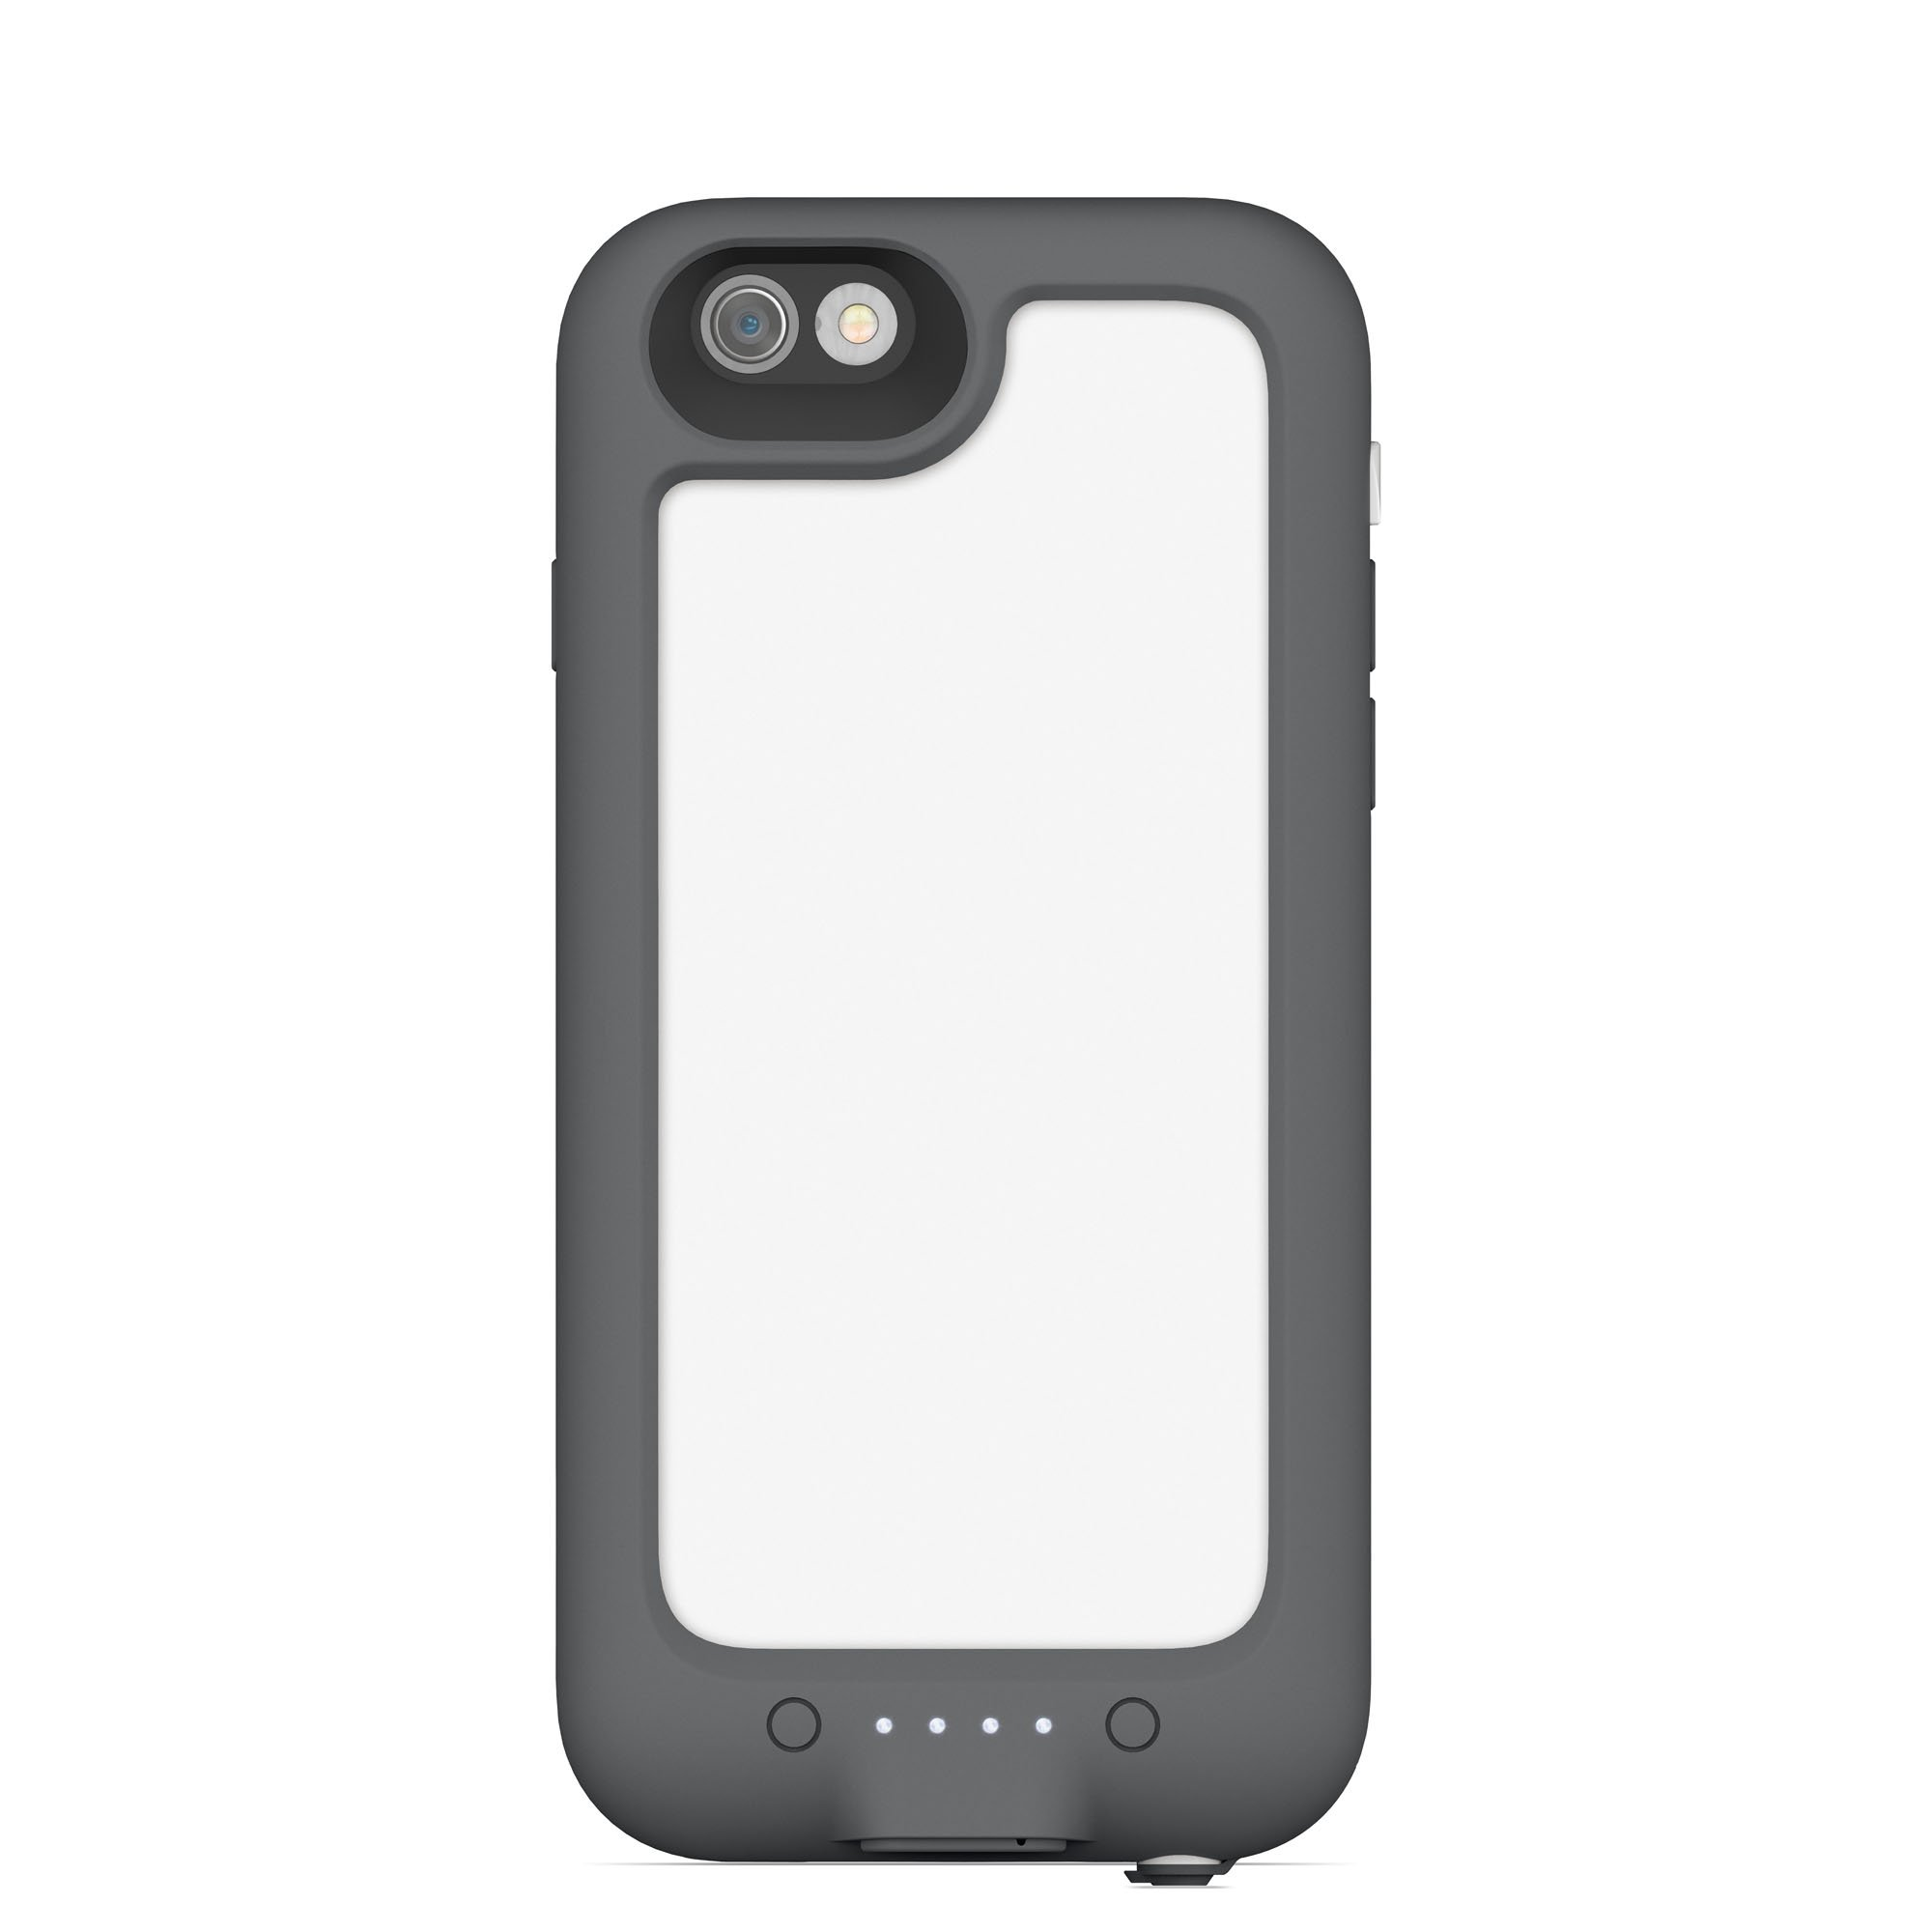 mophie juice pack H2PRO - Waterproof Mobile Protective Battery Pack Case for iPhone 6/6s - White by mophie (Image #2)